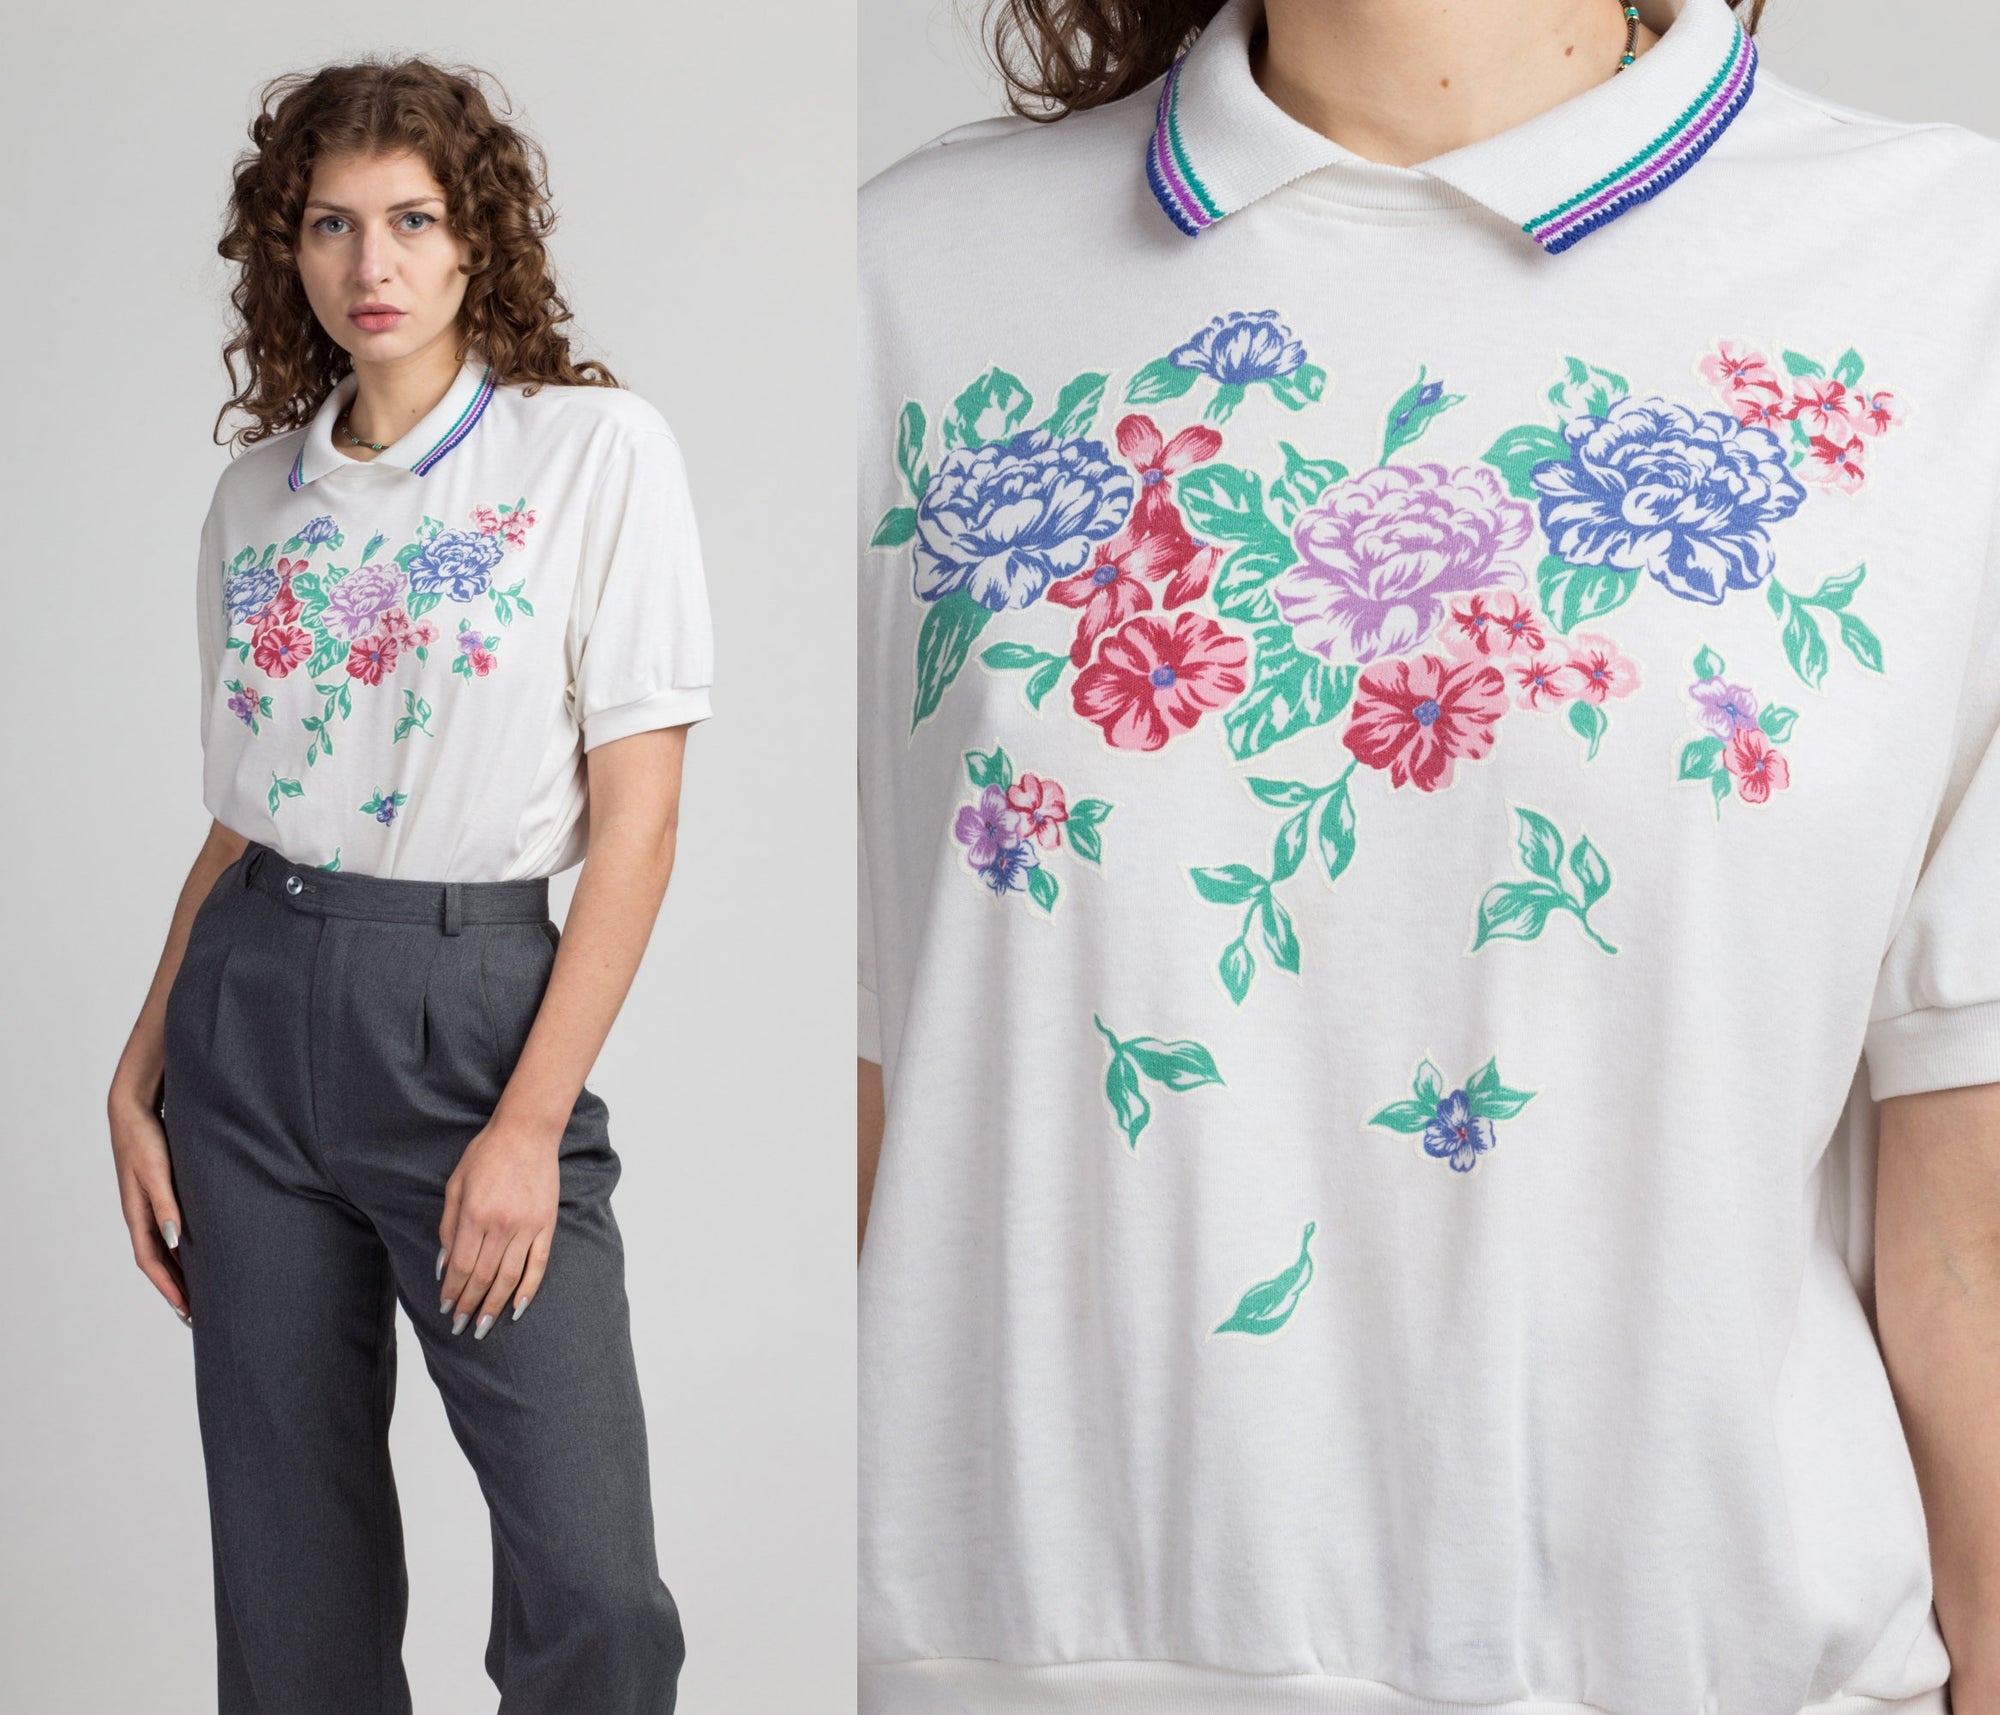 80s Floral Collared Polo Top - Large | Vintage White Graphic Pullover